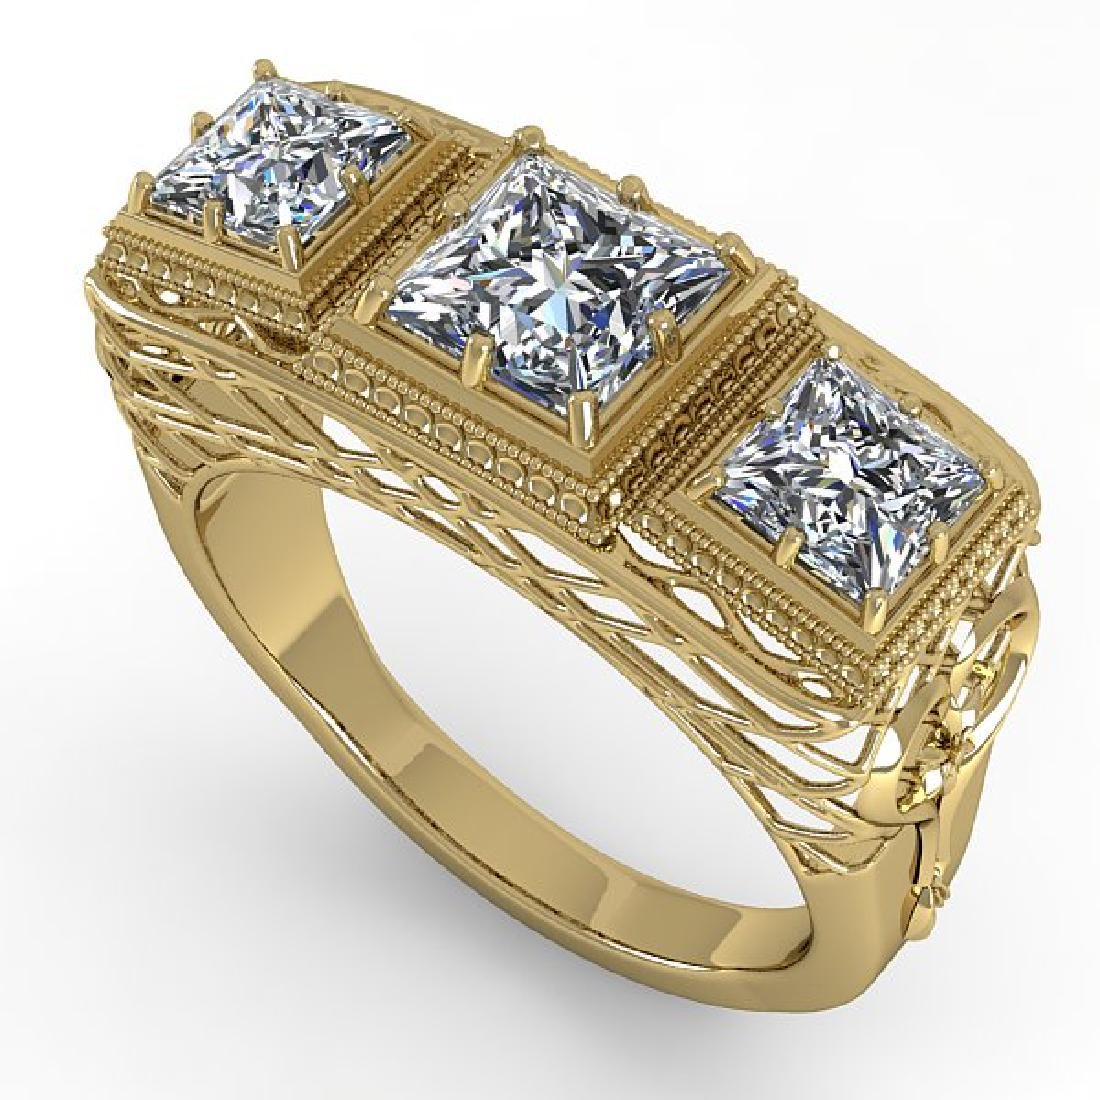 2 CTW VS/SI Princess Diamond Ring 14K Yellow Gold - 2